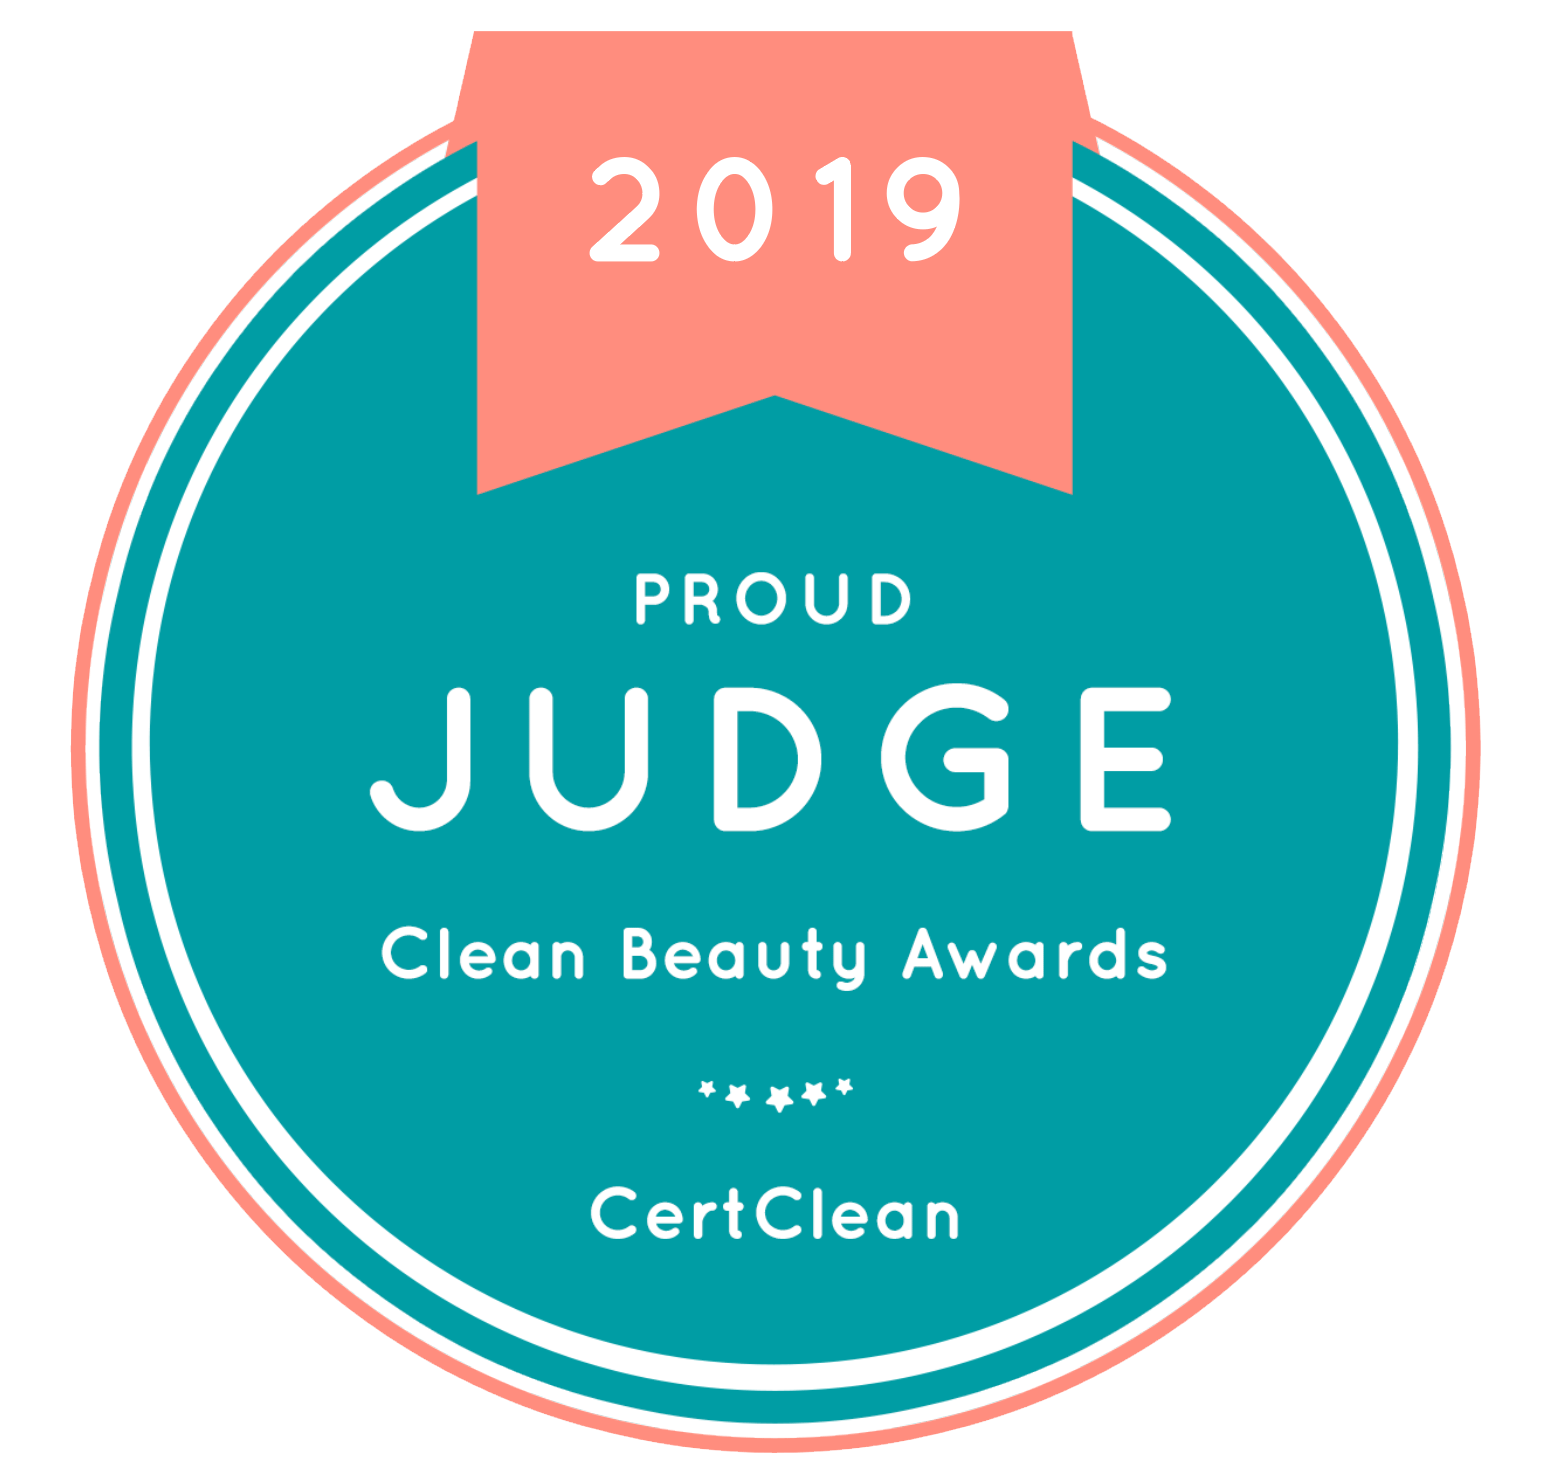 Proud Judge of Cert Clean Clean Beauty Awards for the second year in the row